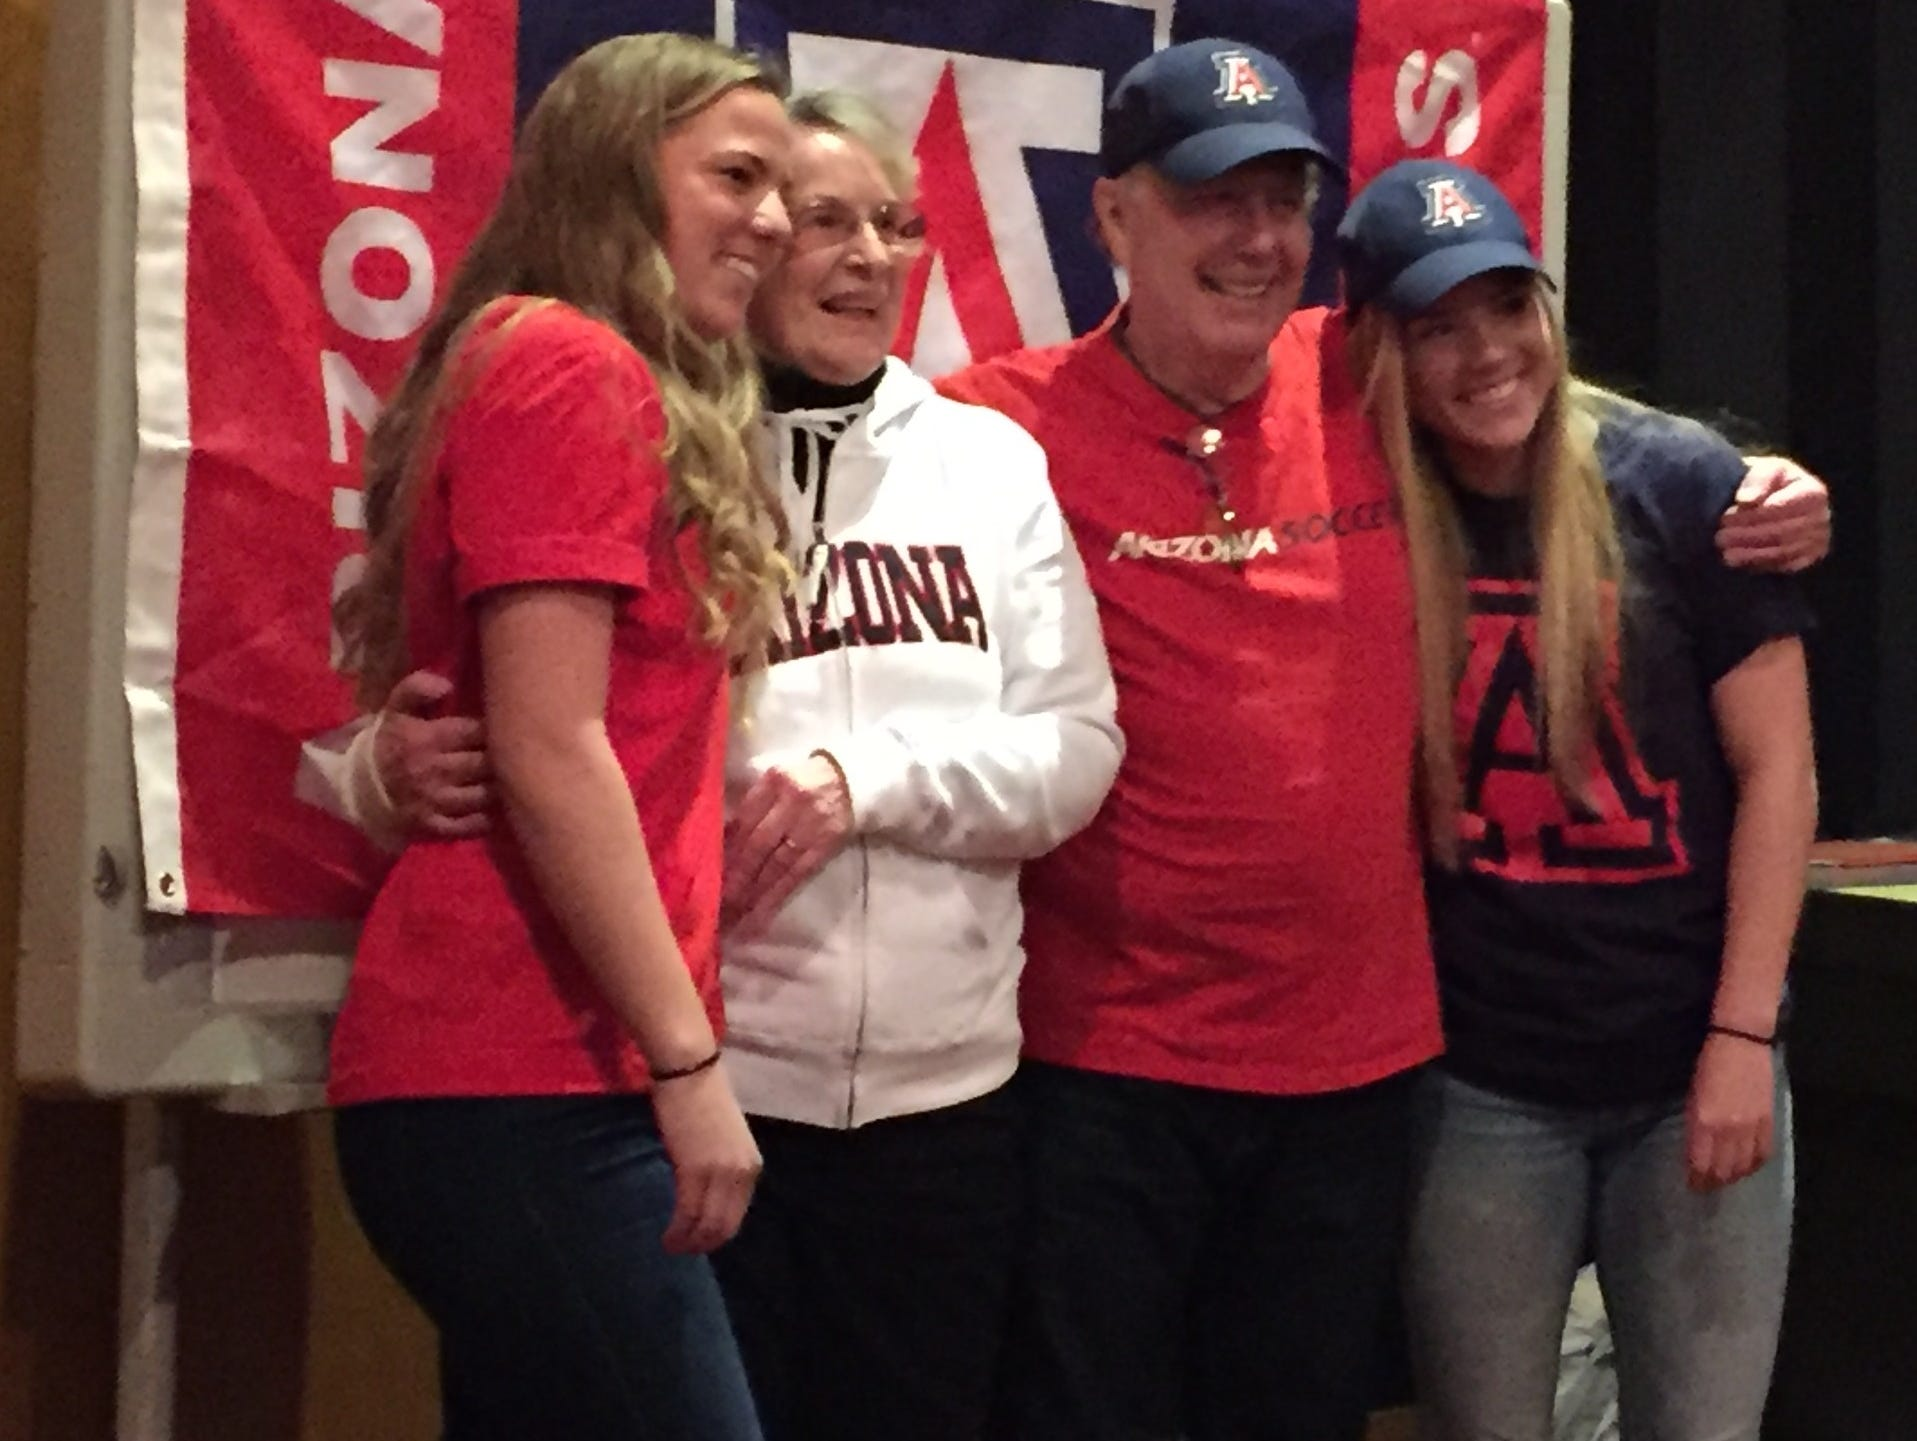 South Salem seniors Hannah Clifford (left) and Hailey Clifford (far right) have signed National Letters of Intent to play soccer at Arizona.